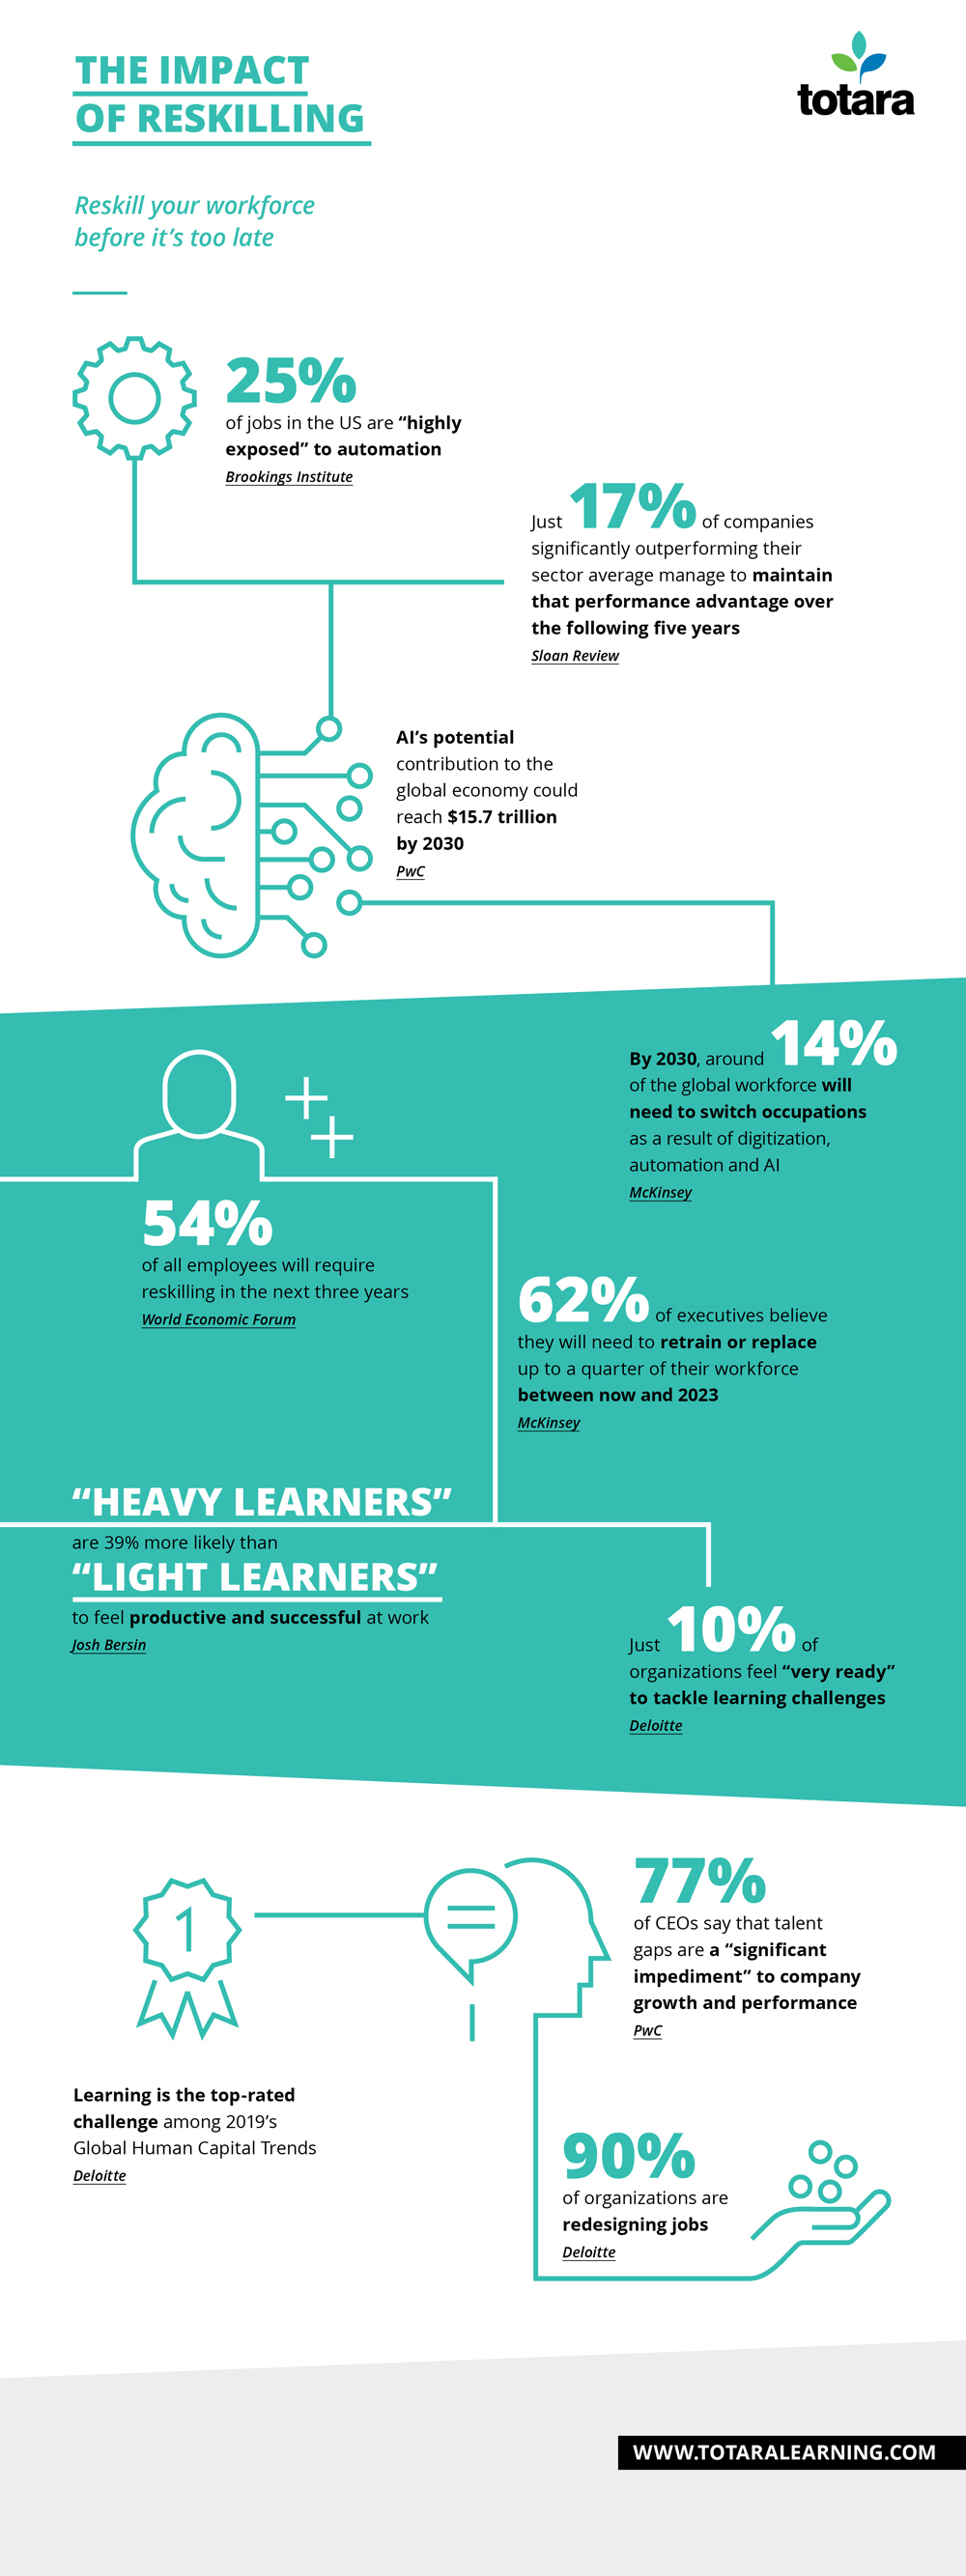 Infographic showing the challenges facing organizations dealing with reskilling